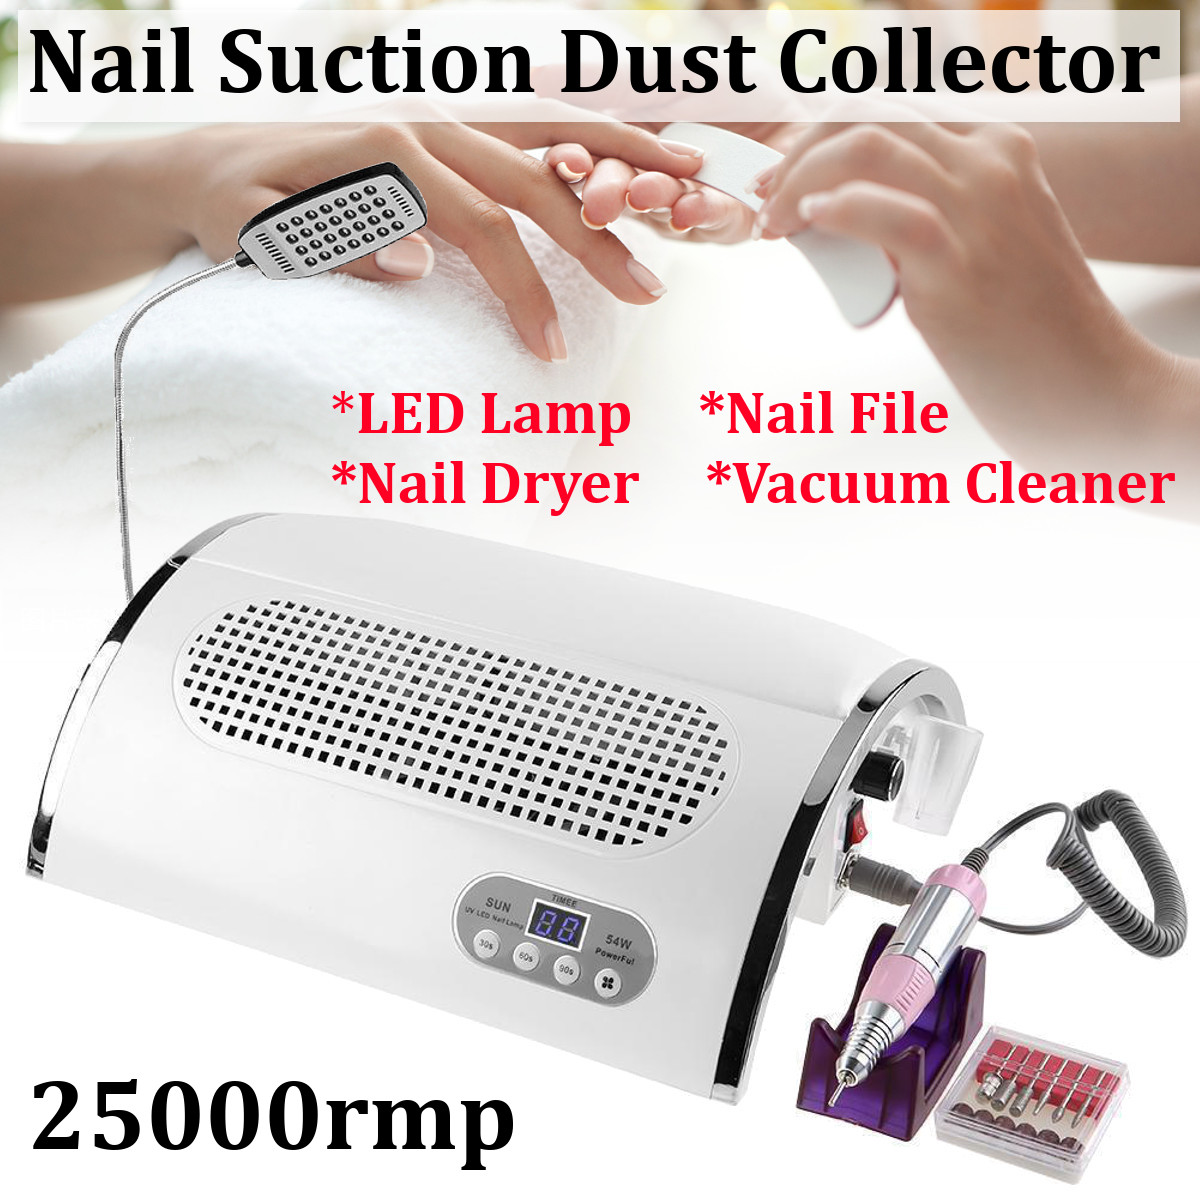 3 In 1 Strong Power 54W Nail Fan Art Salon Suction Dust Collector Vacuum Cleaner Nail